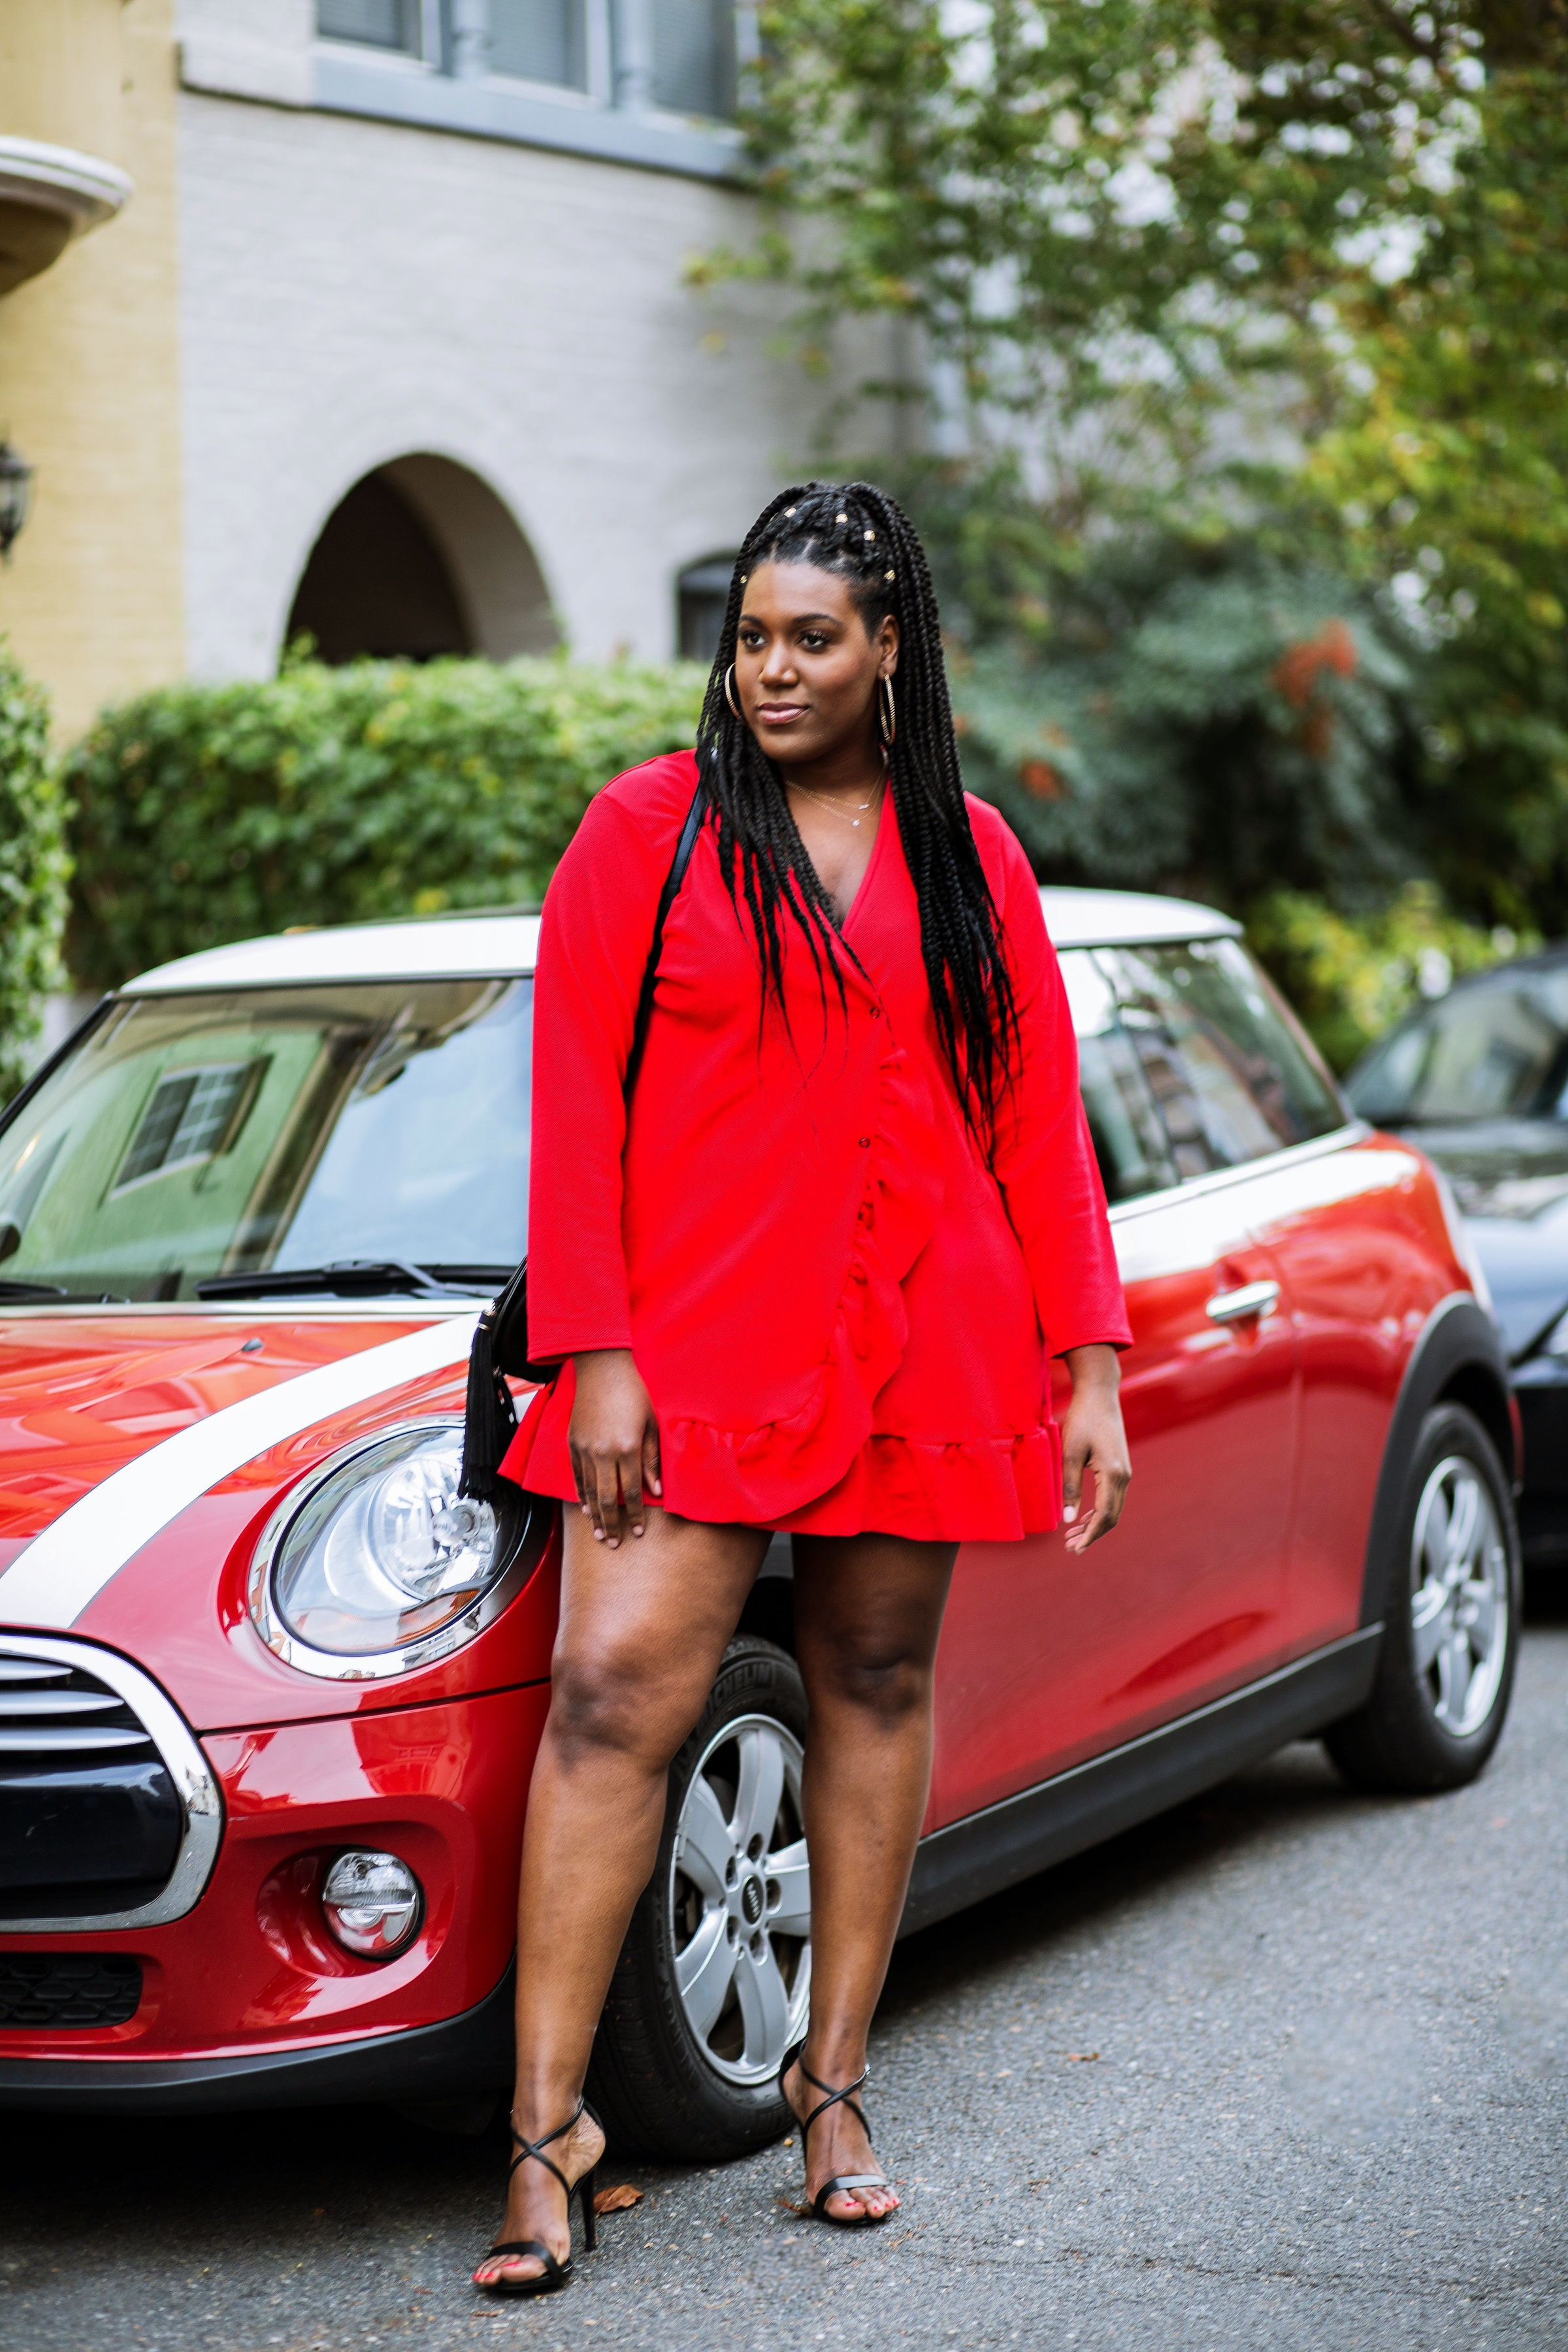 Charmant Style Red Holiday Dress